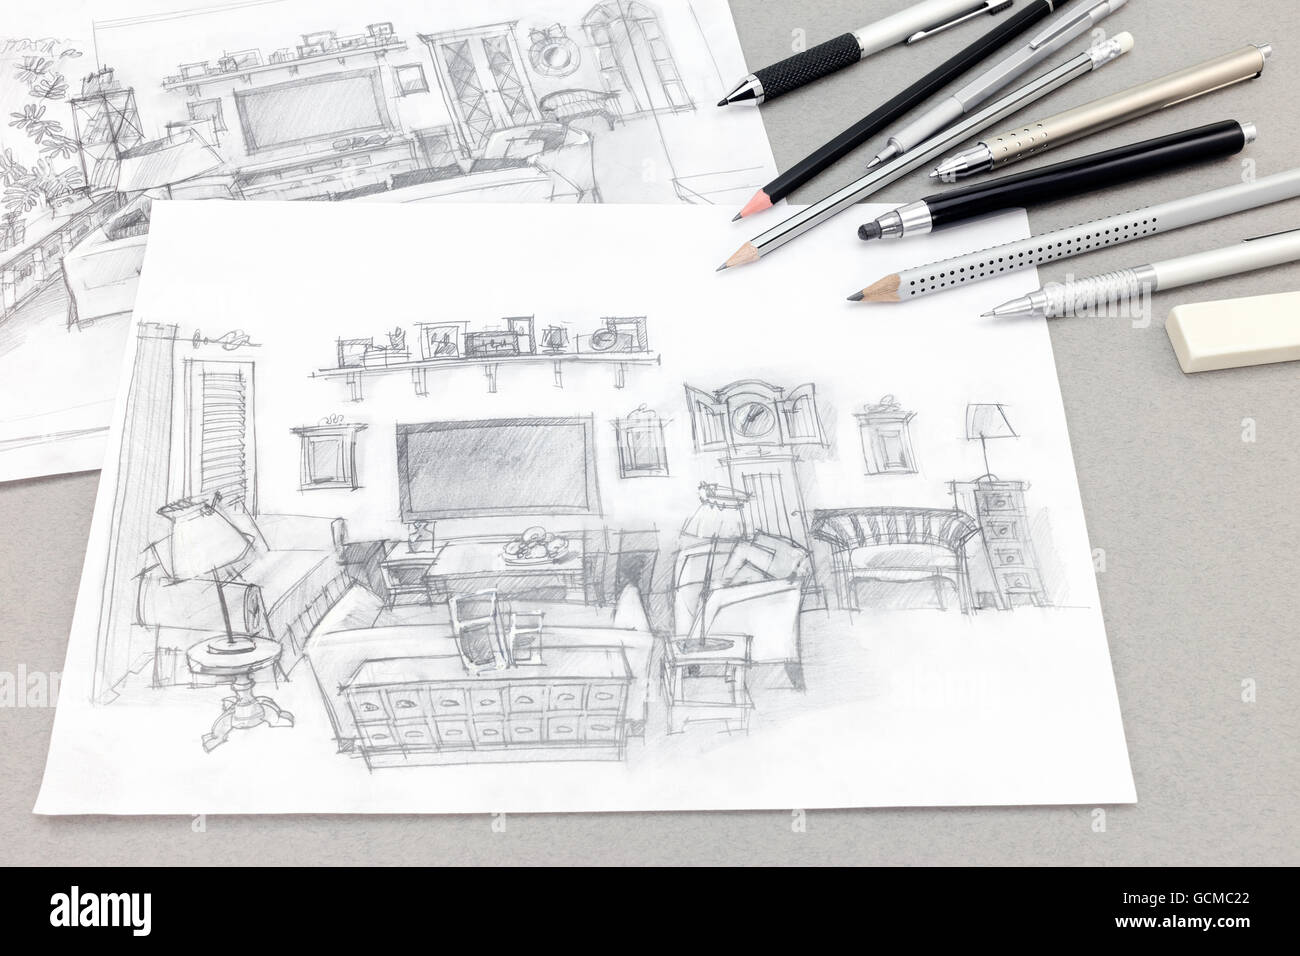 Hand Drawn Sketches Of Home Interior With Drawing Tools On